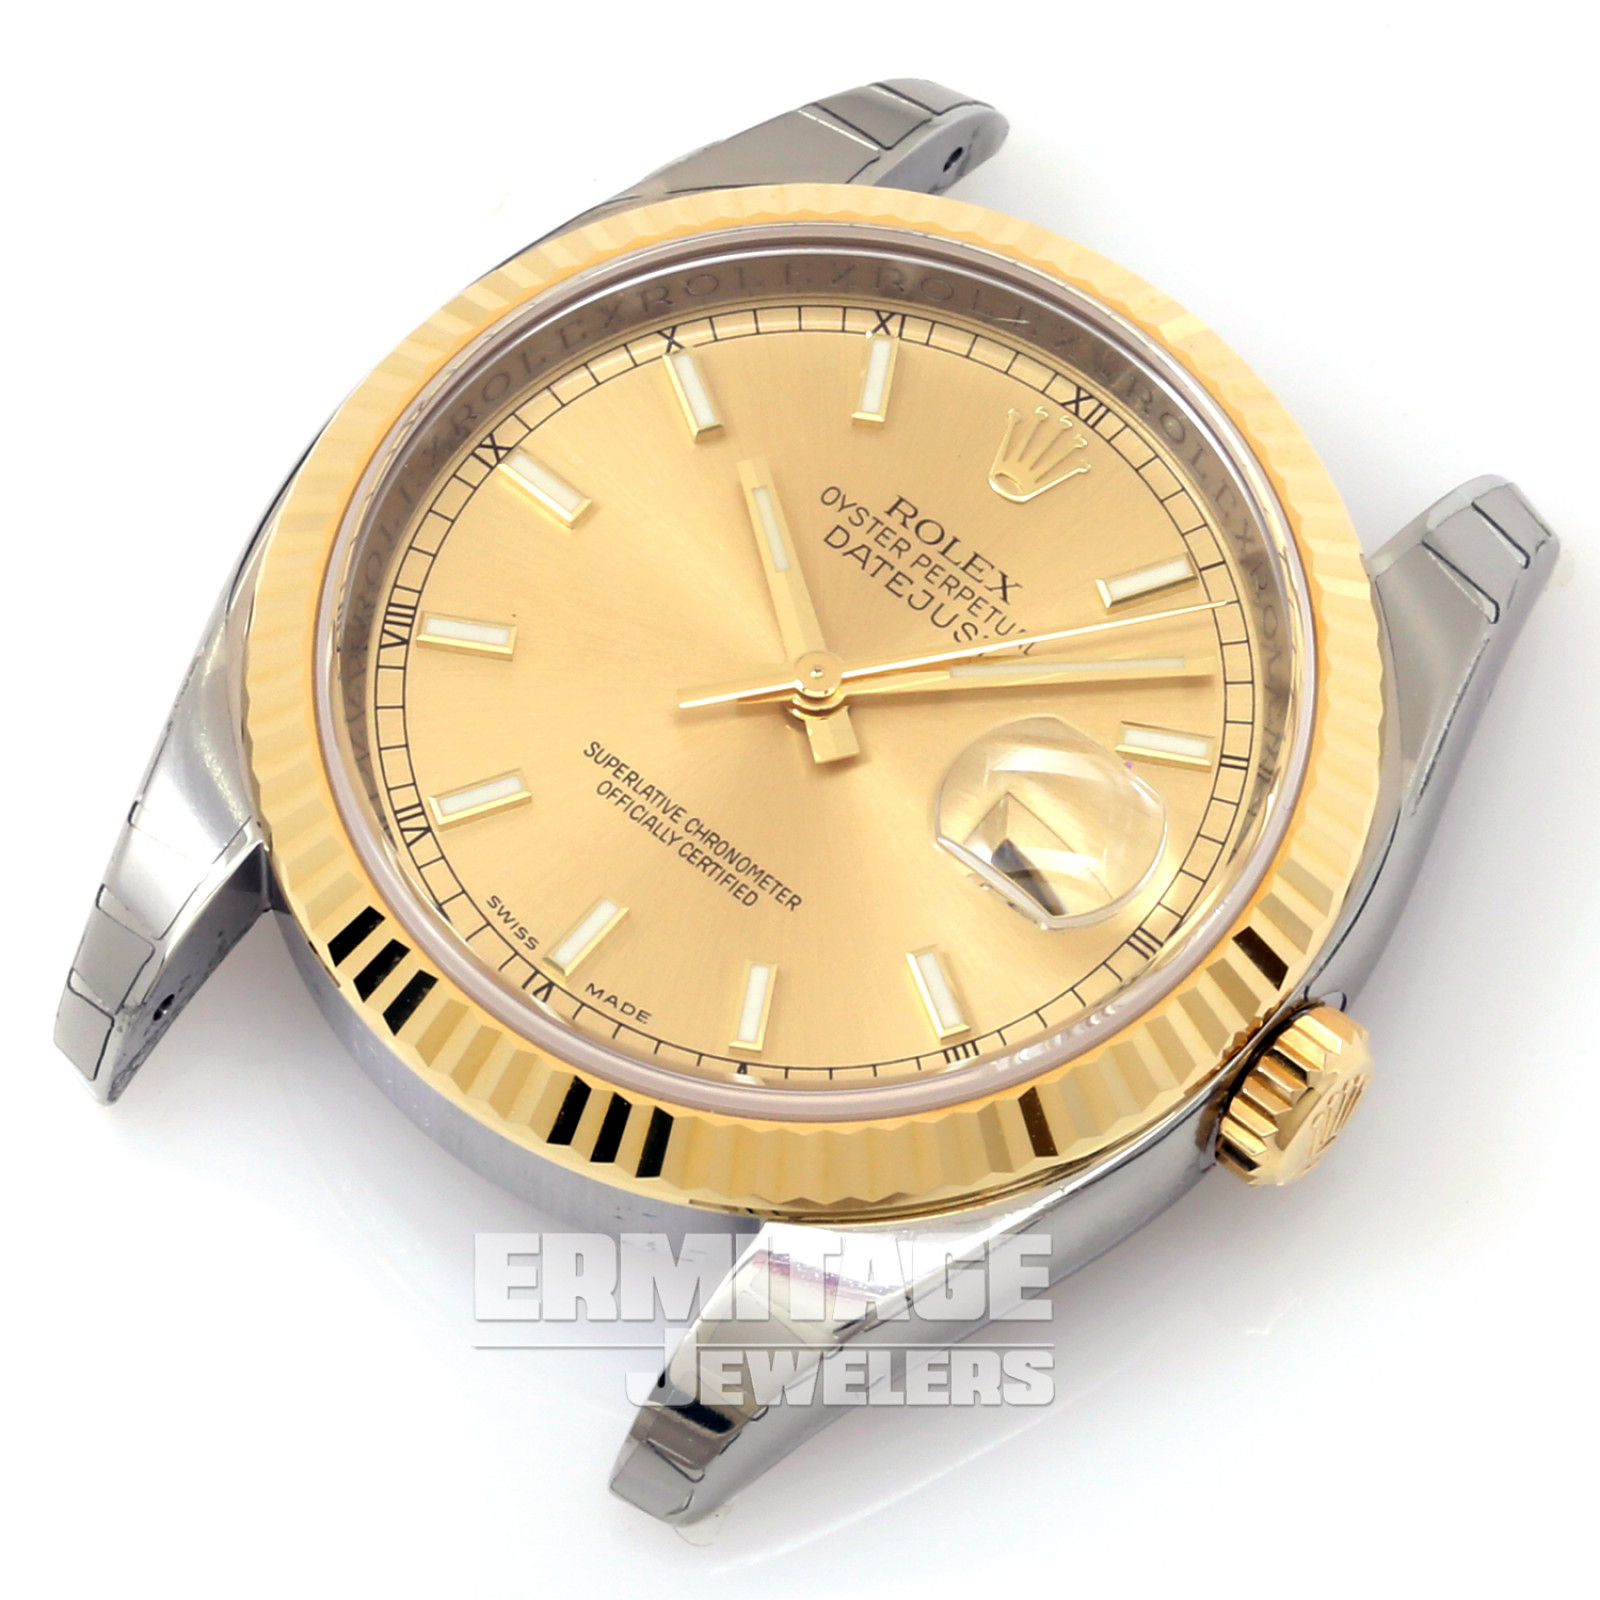 Sell Rolex Datejust 116233 with Champagne Dial